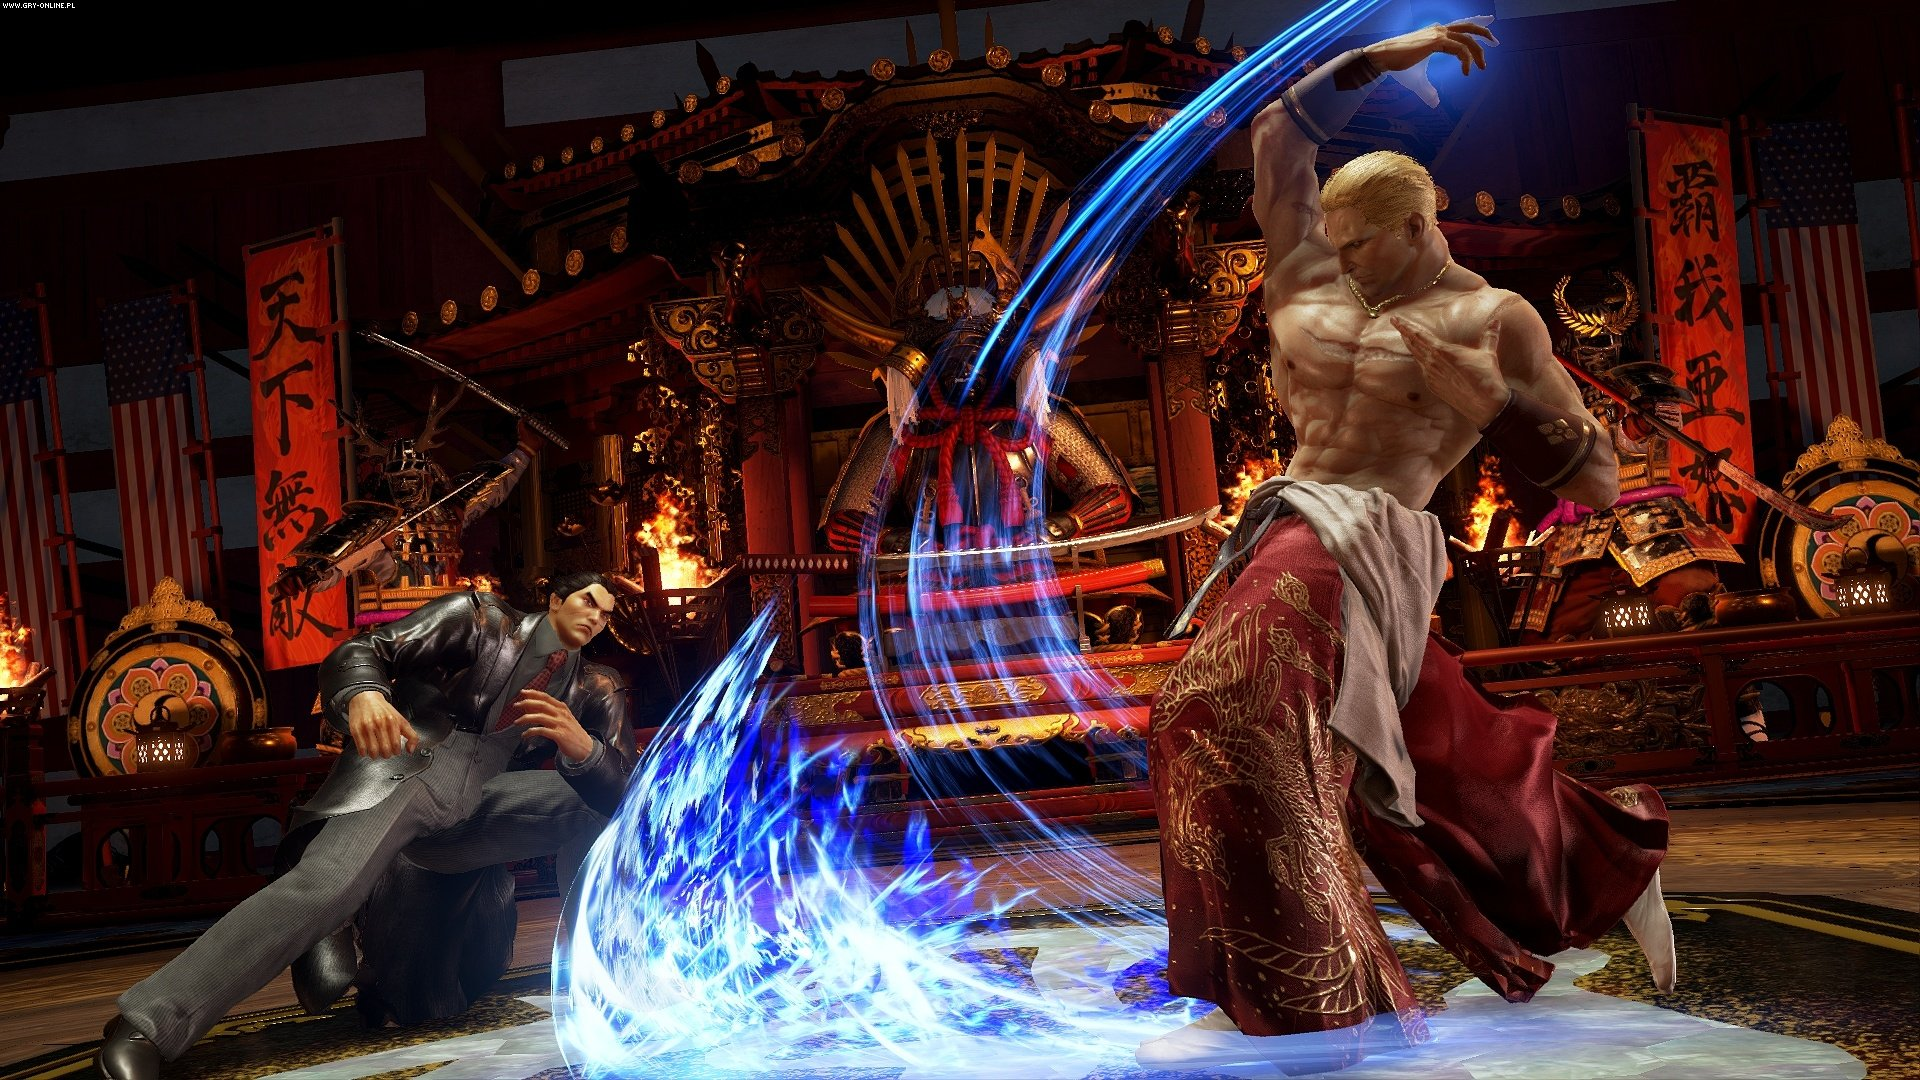 Tekken 7 PC, PS4, XONE Gry Screen 82/264, Bandai Namco Entertainment